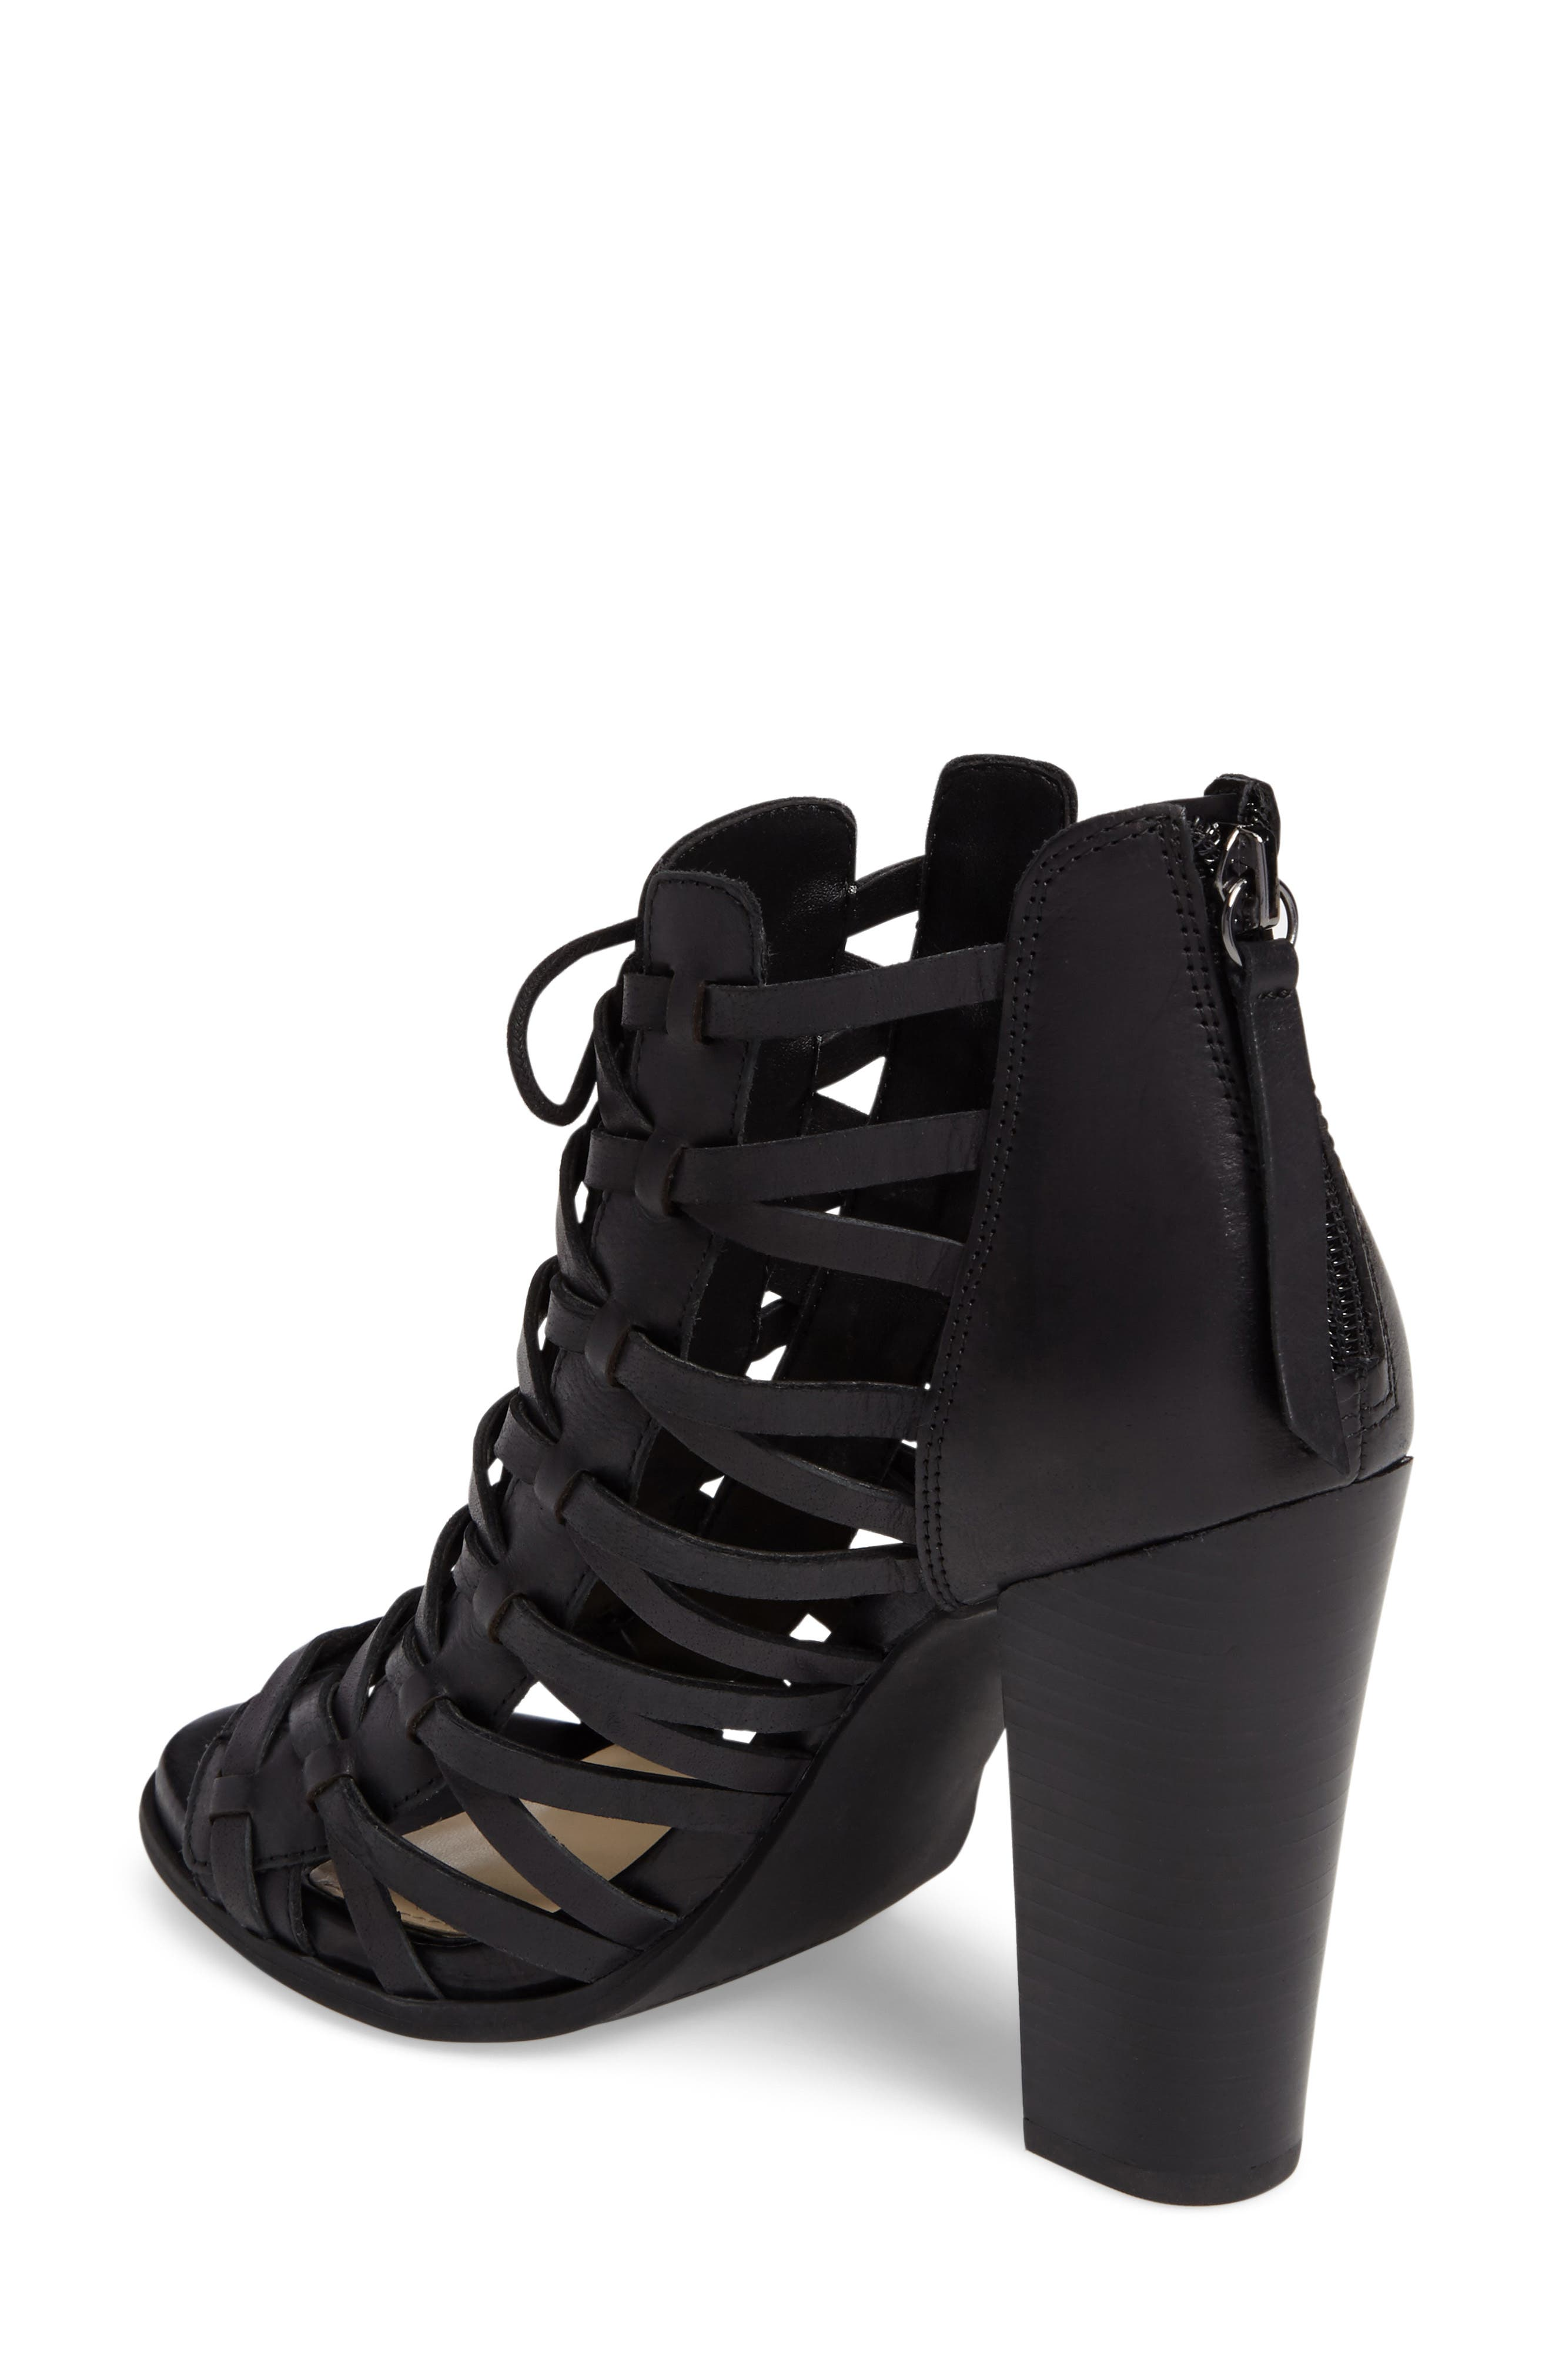 JESSICA SIMPSON,                             Riana Woven Leather Cage Sandal,                             Alternate thumbnail 2, color,                             001